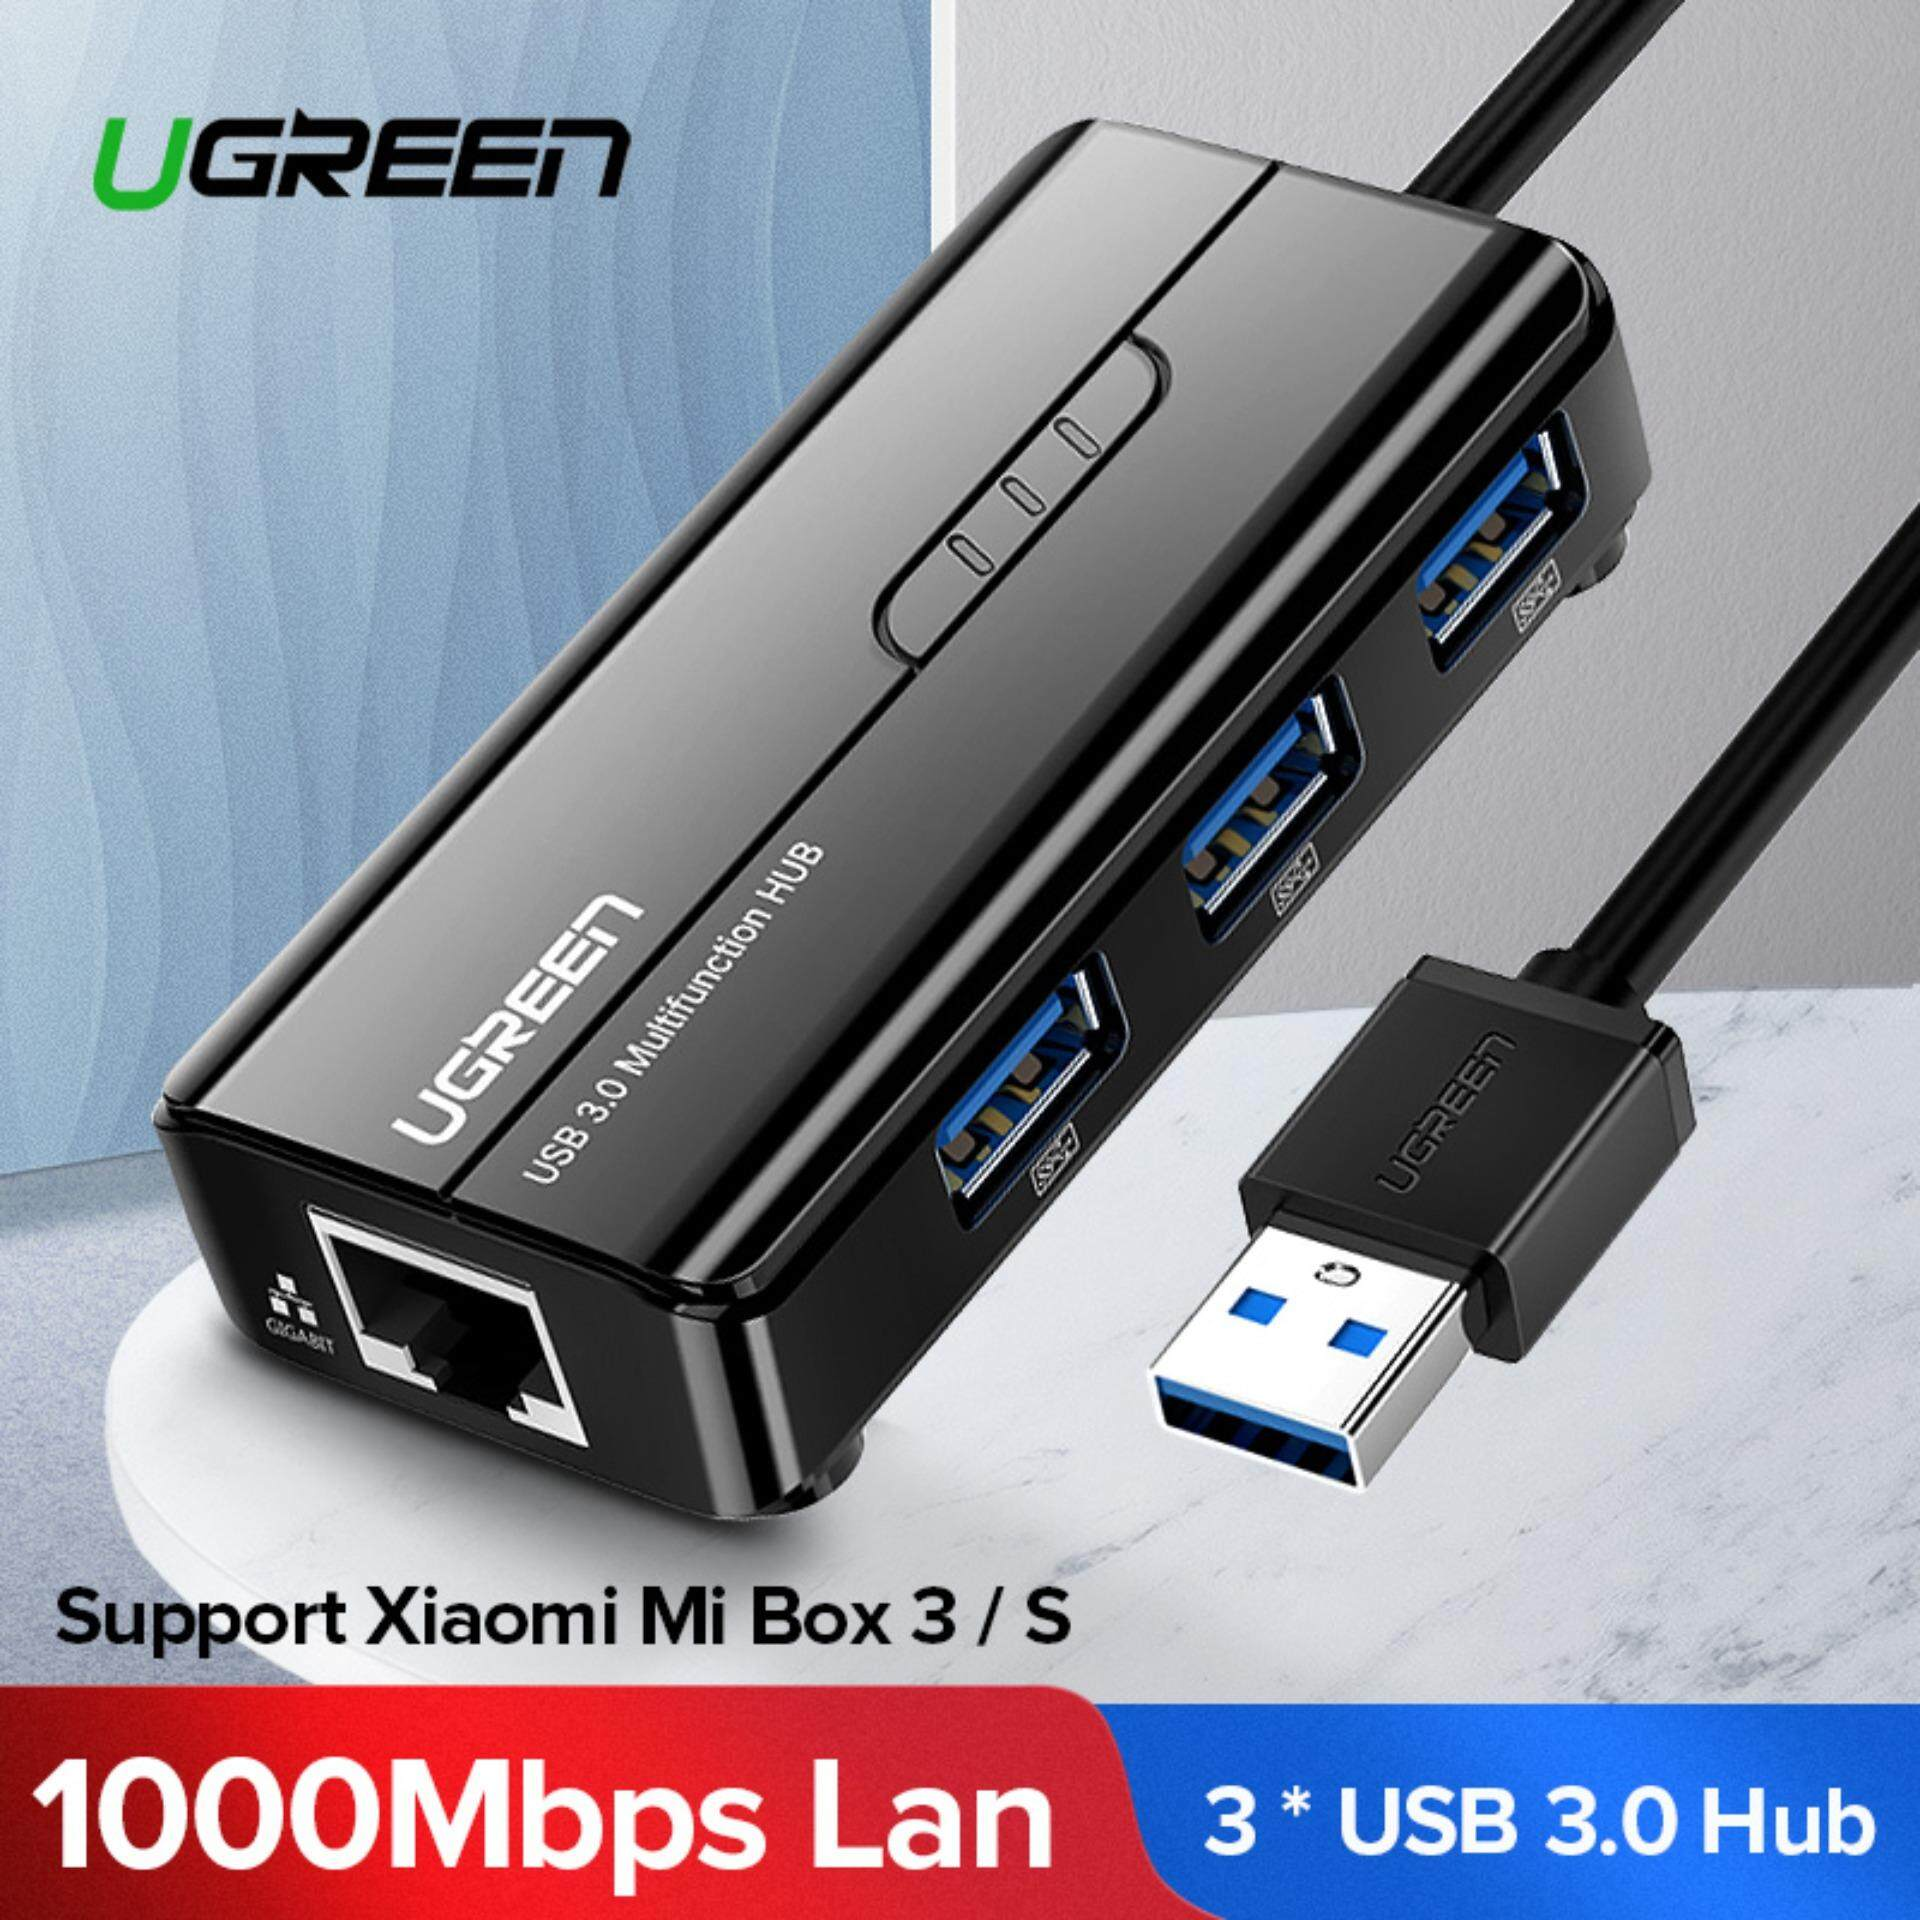 Ugreen Ethernet Adapter Usb Gigabit Network Adapter 10/100/1000mbps/1 Gbps With Usb 3.0 Hub 3 Ports For Nintendo Switch, Wii,xiaomi Box,windows Surface Pro, Macbook Air/retina, Imac Pro, Chromebook, And More Pc By Ugreen Flagship Store.